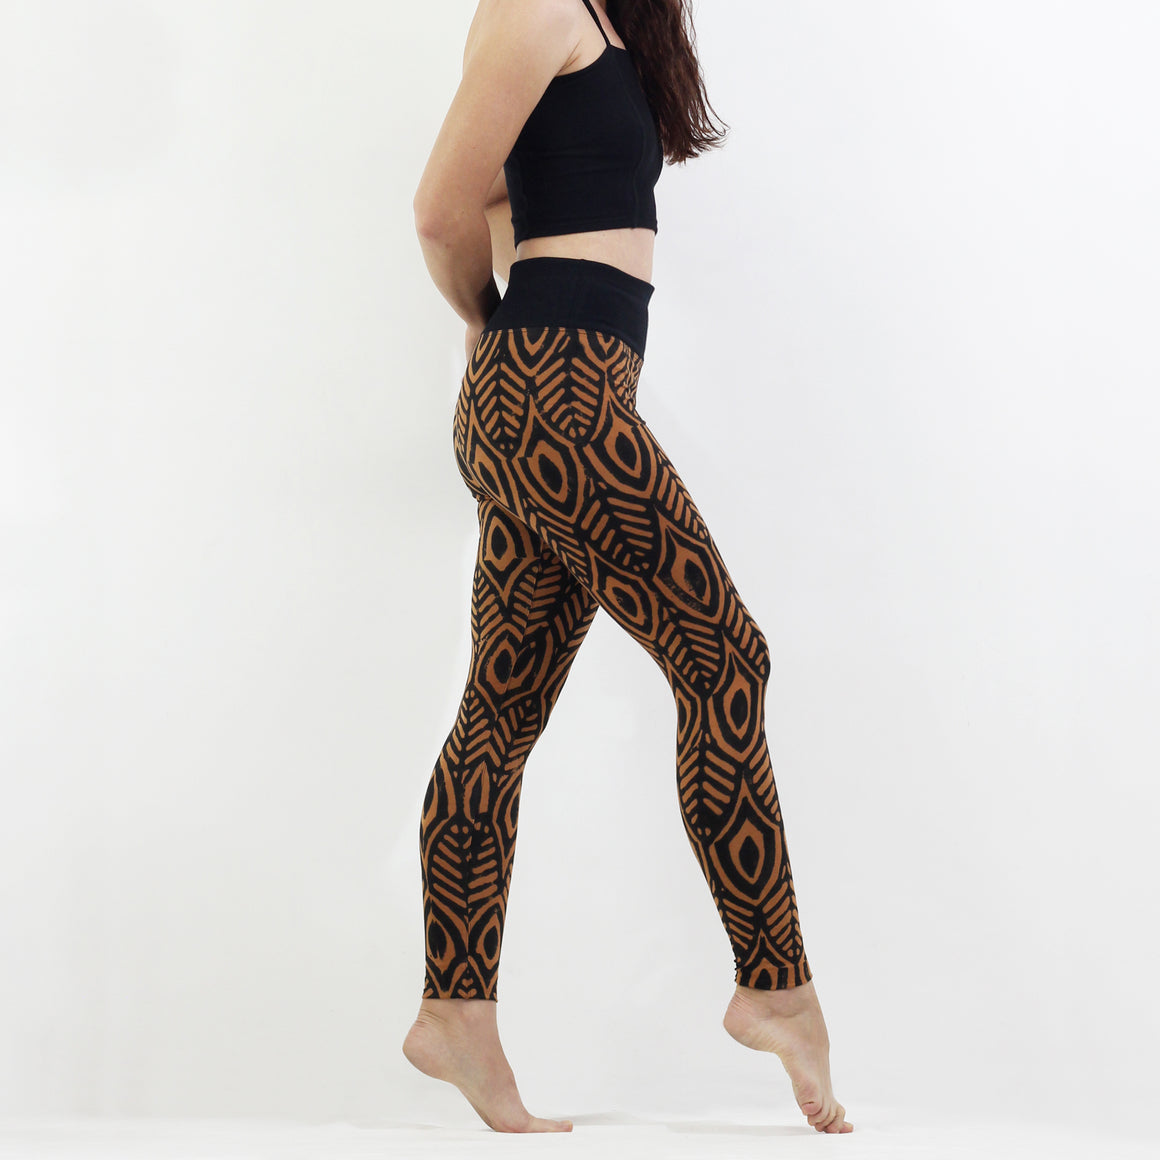 BlackTop Pharaoh's Feathers - Leggings